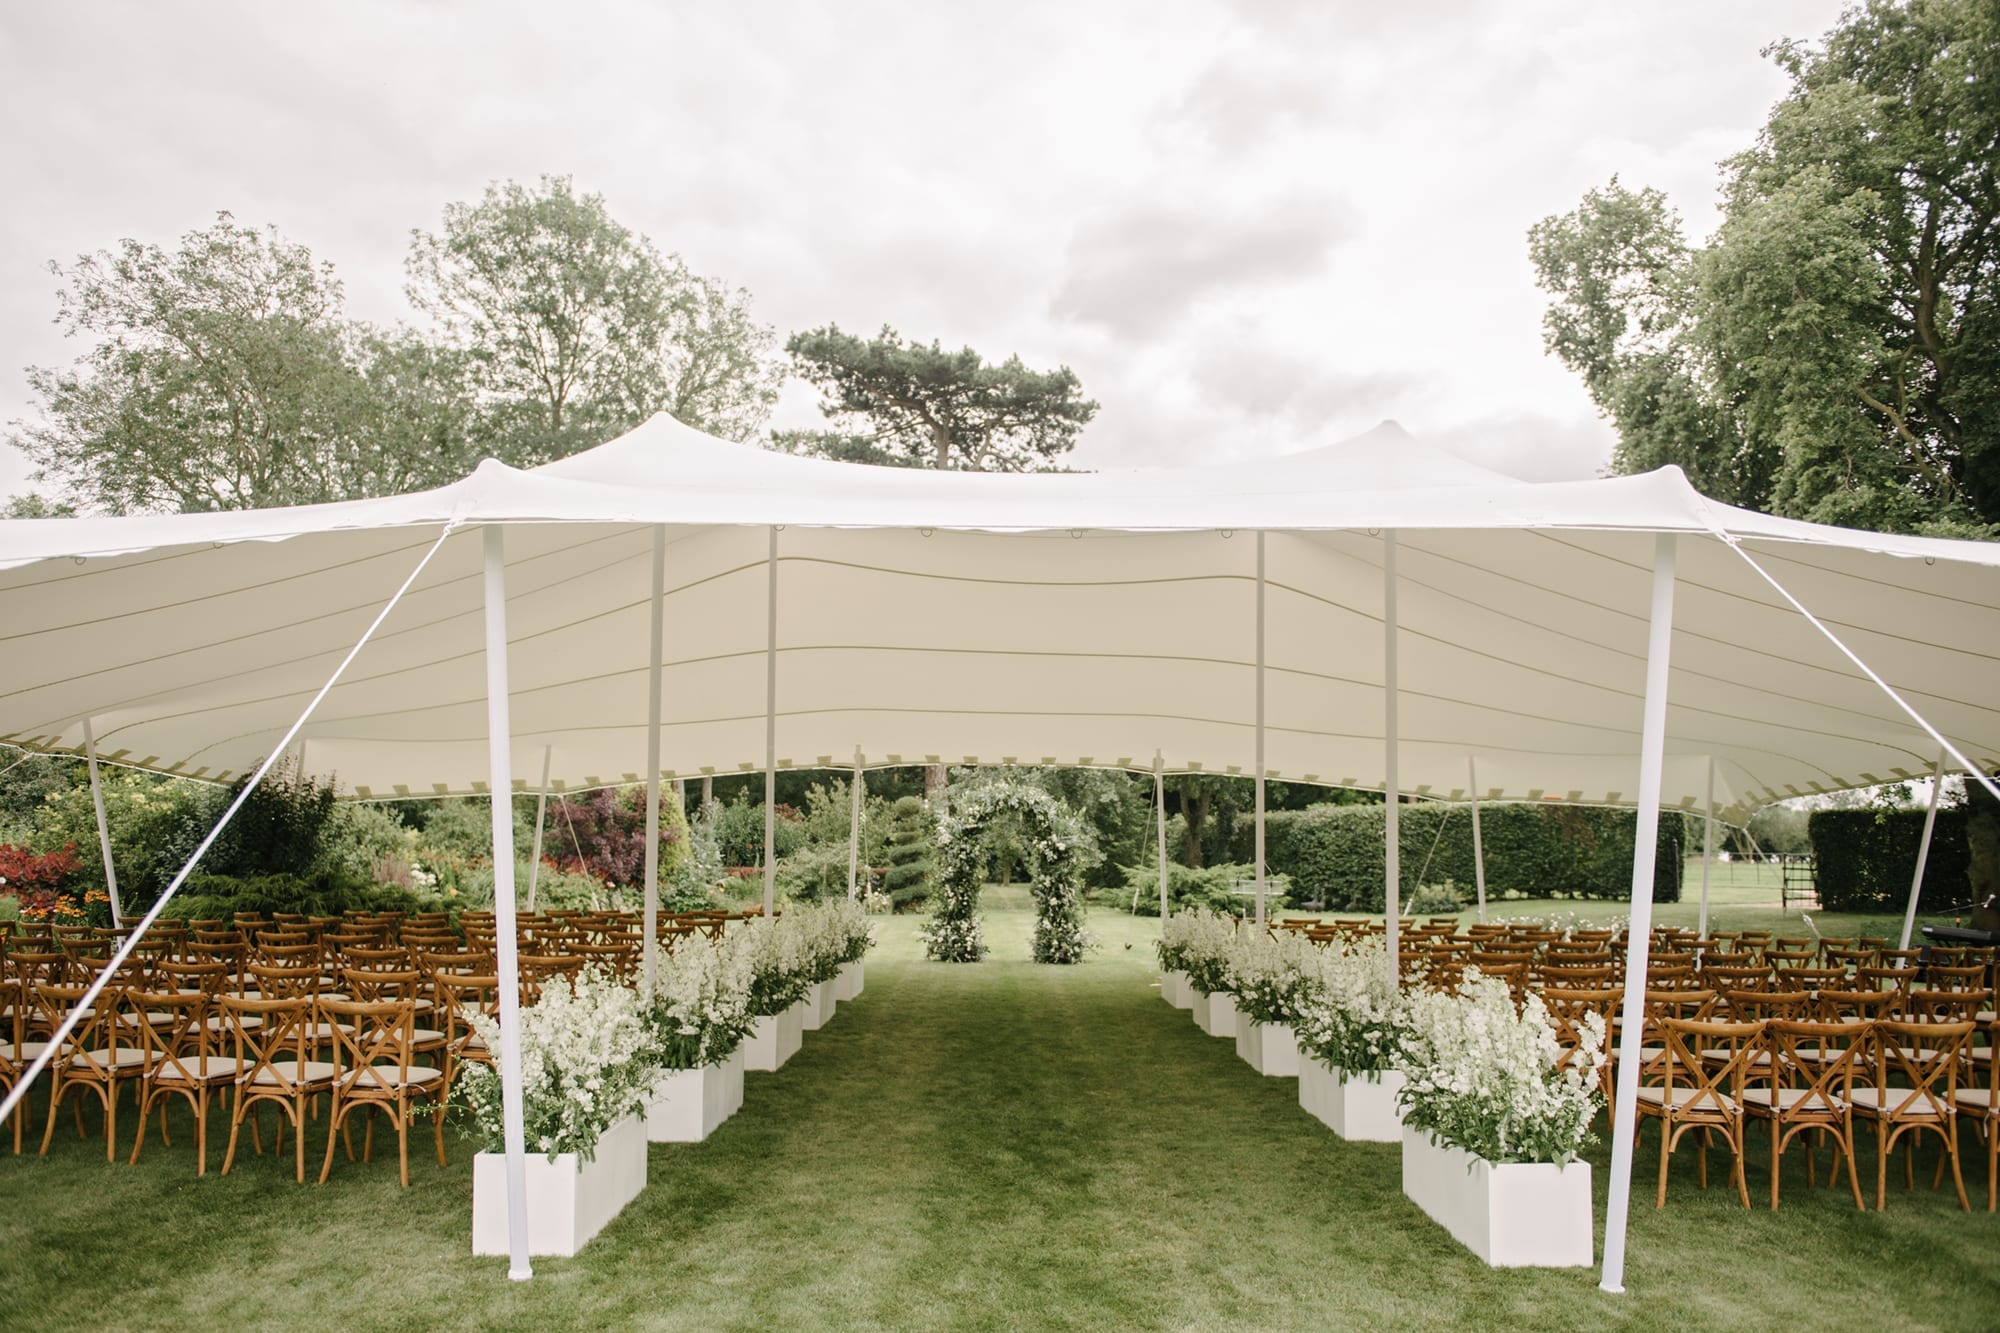 Stretch marquee set up for wedding ceremony in English garden